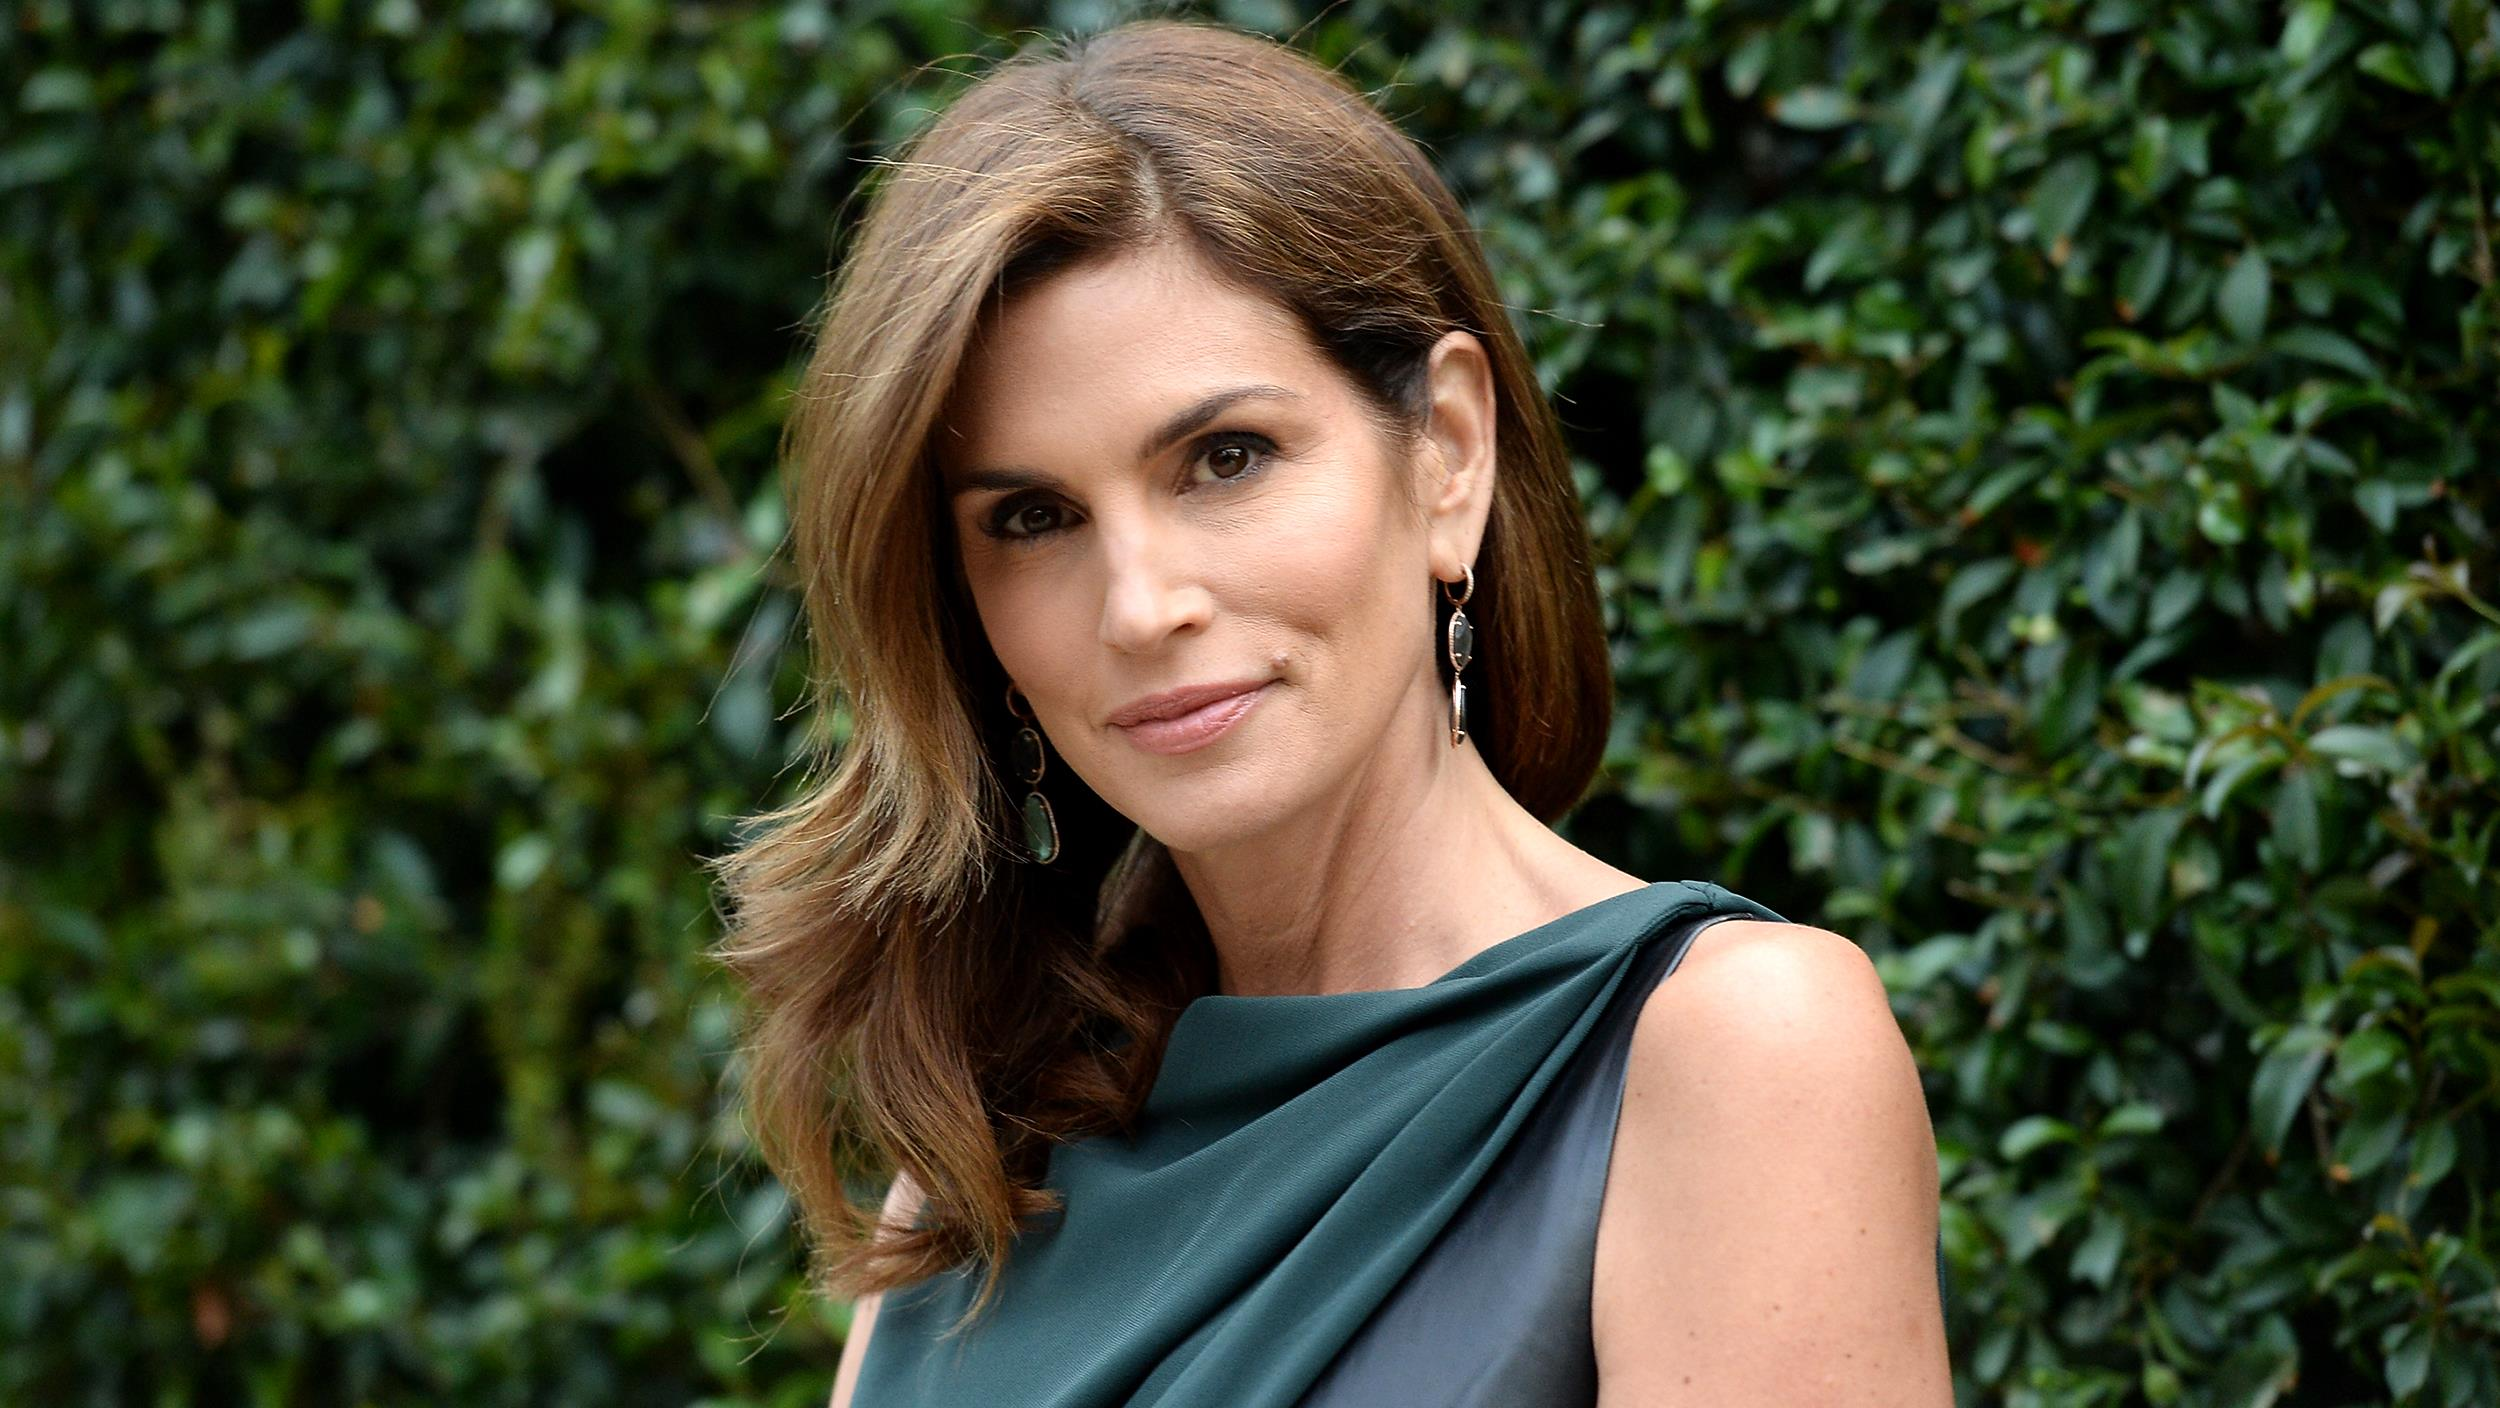 Leaked photo of Cindy Crawford goes viral - CBS News